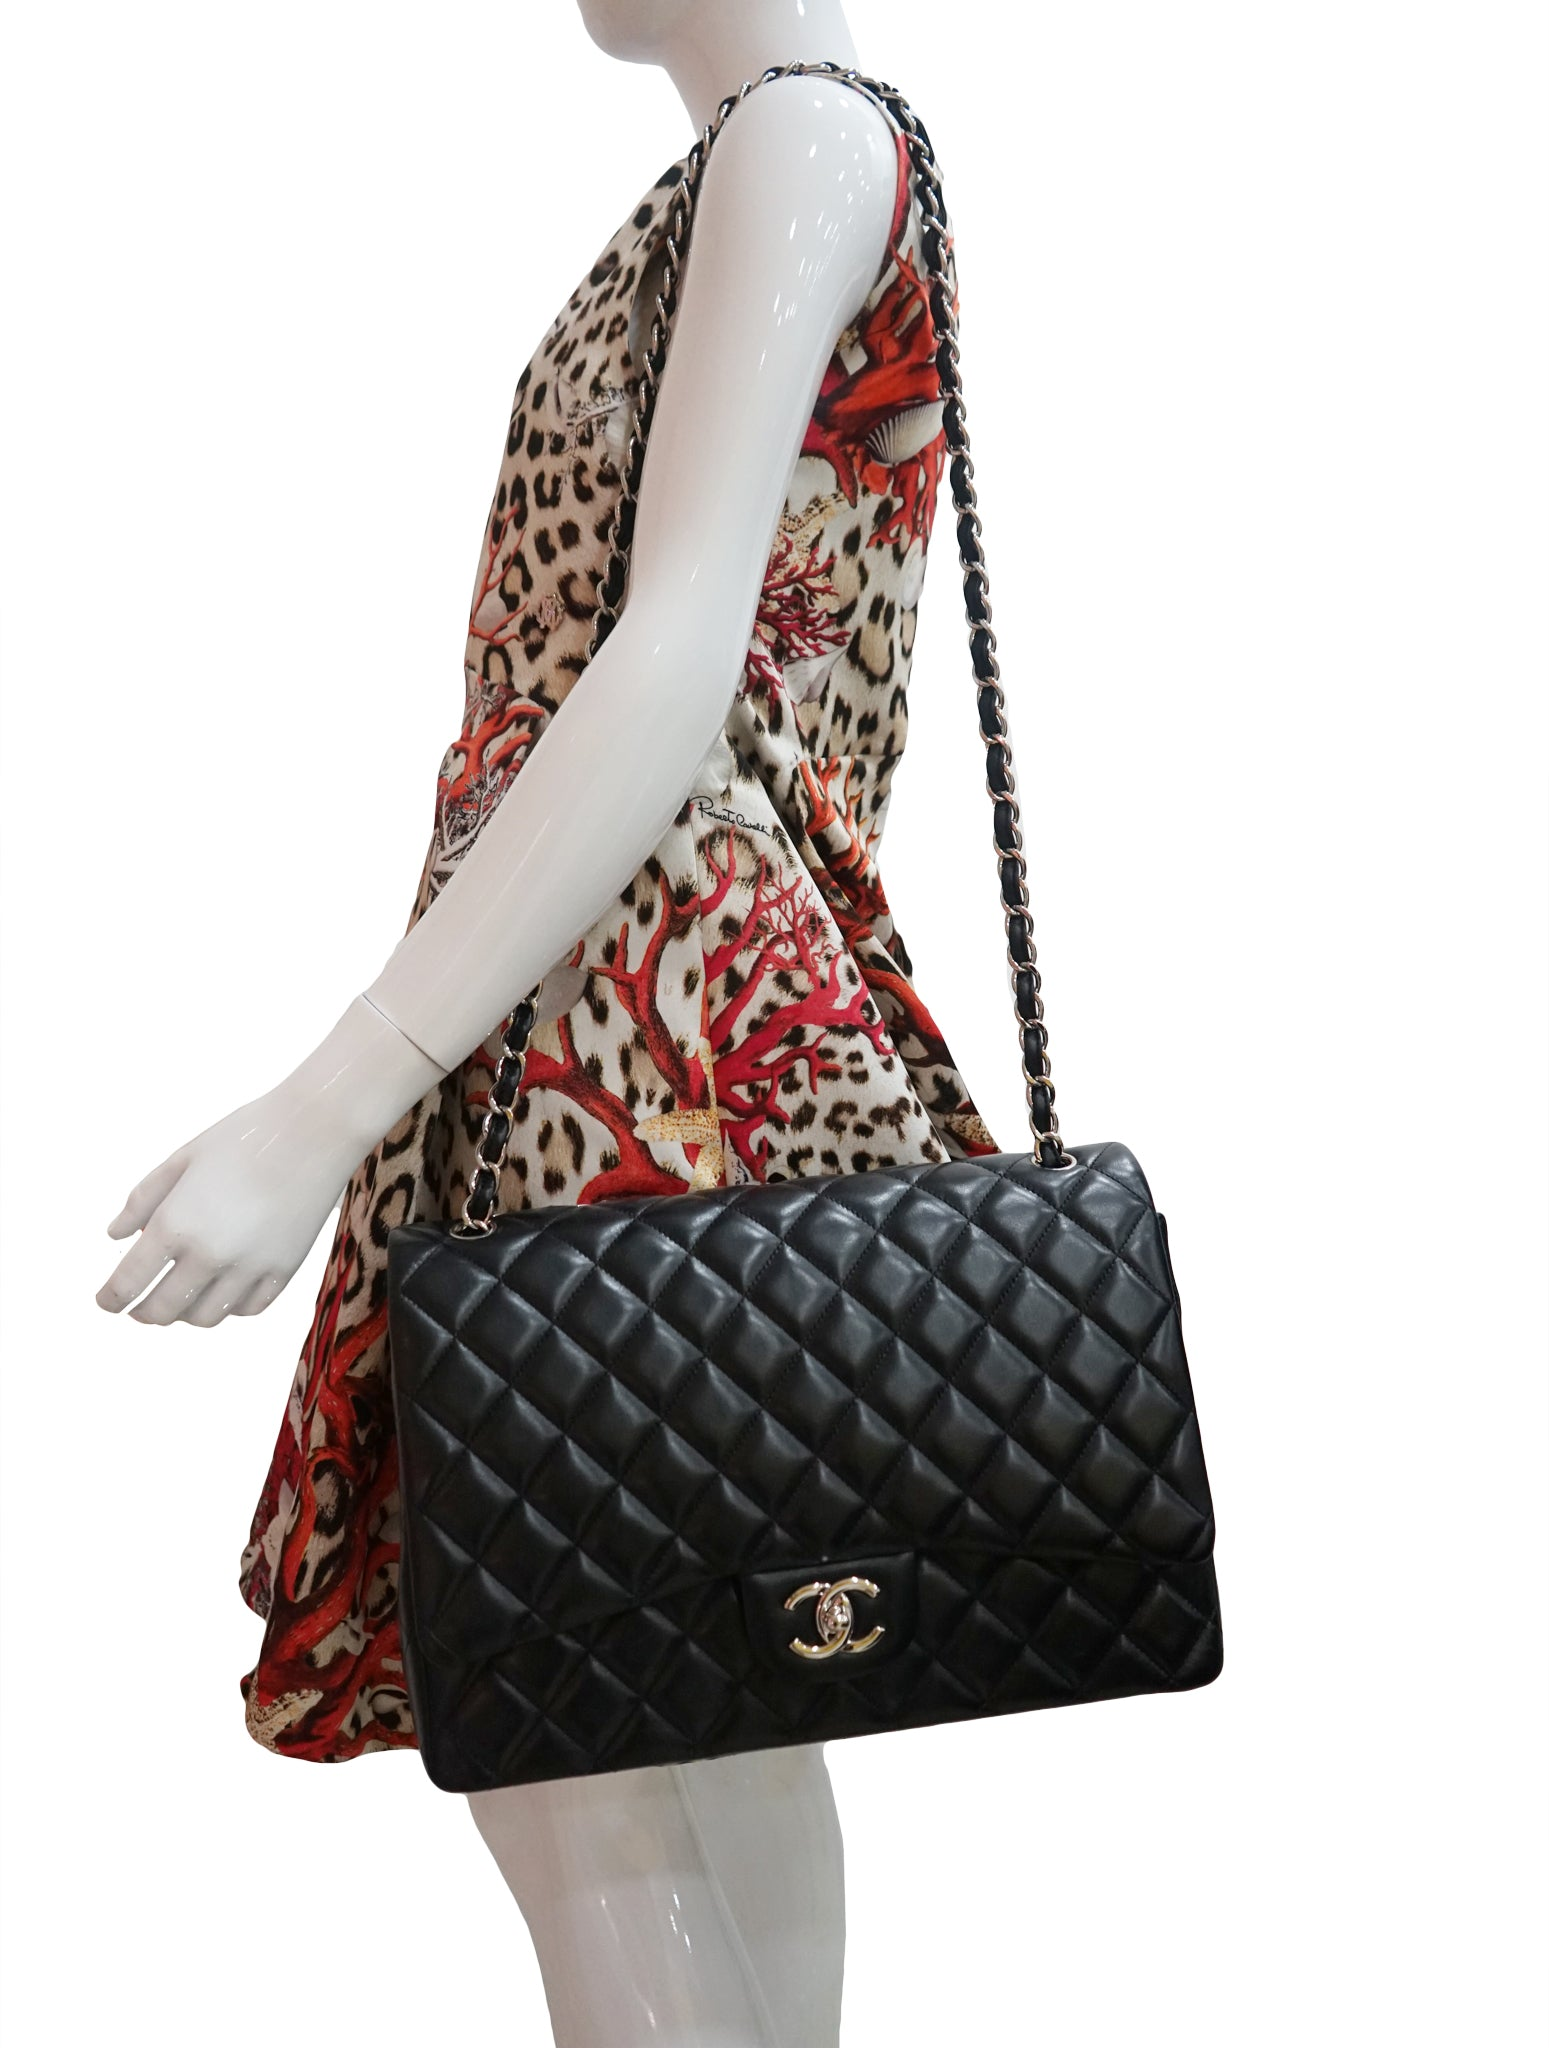 2b44b97bddd8 CHANEL QUILTED LEATHER MAXI CC CLASSIC FLAP BAG – Kidsstyleforless